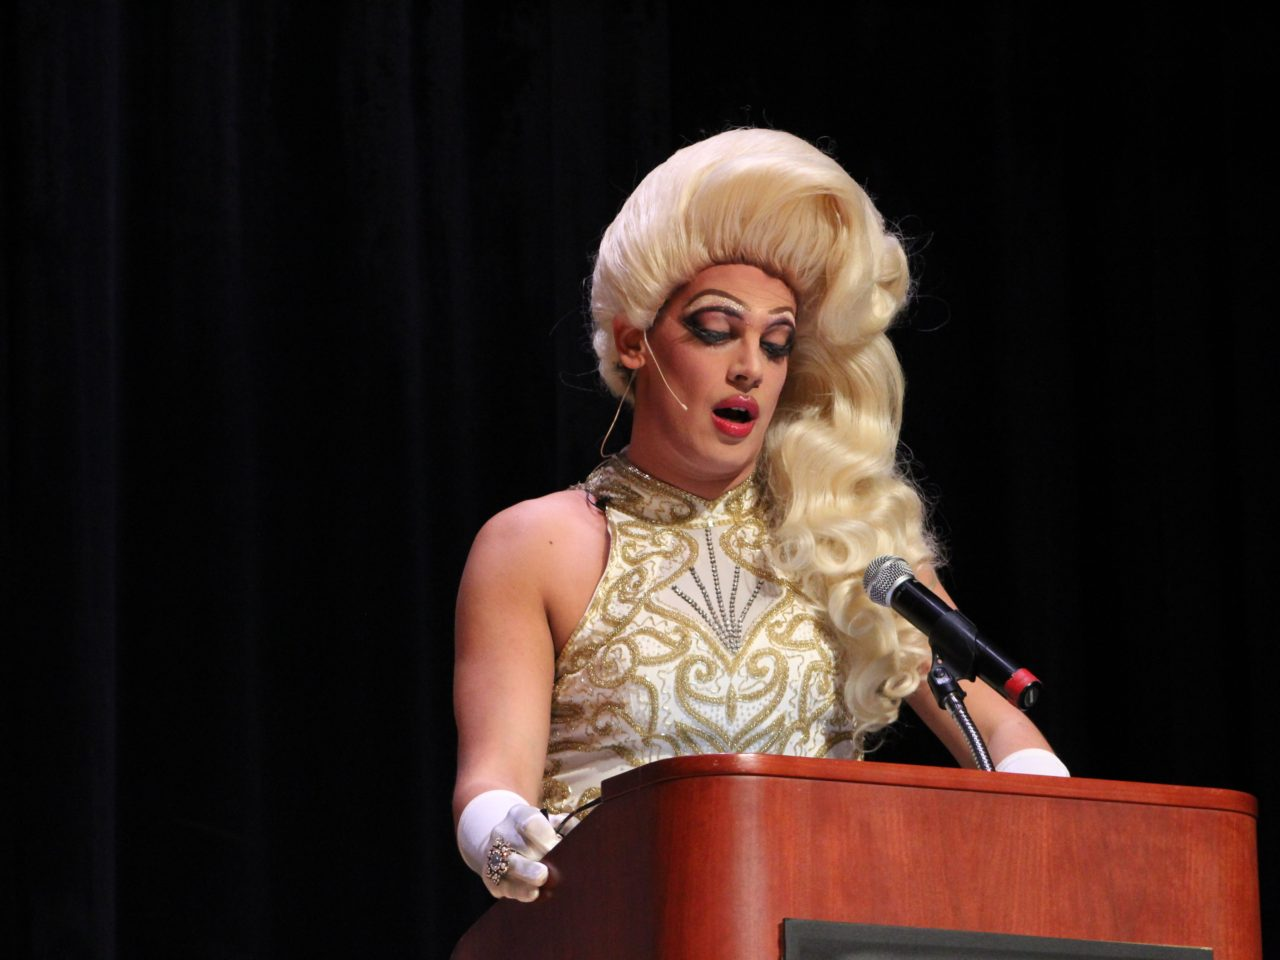 FULL PICTURES Milo As Drag Queen Ivana Wall Breitbart